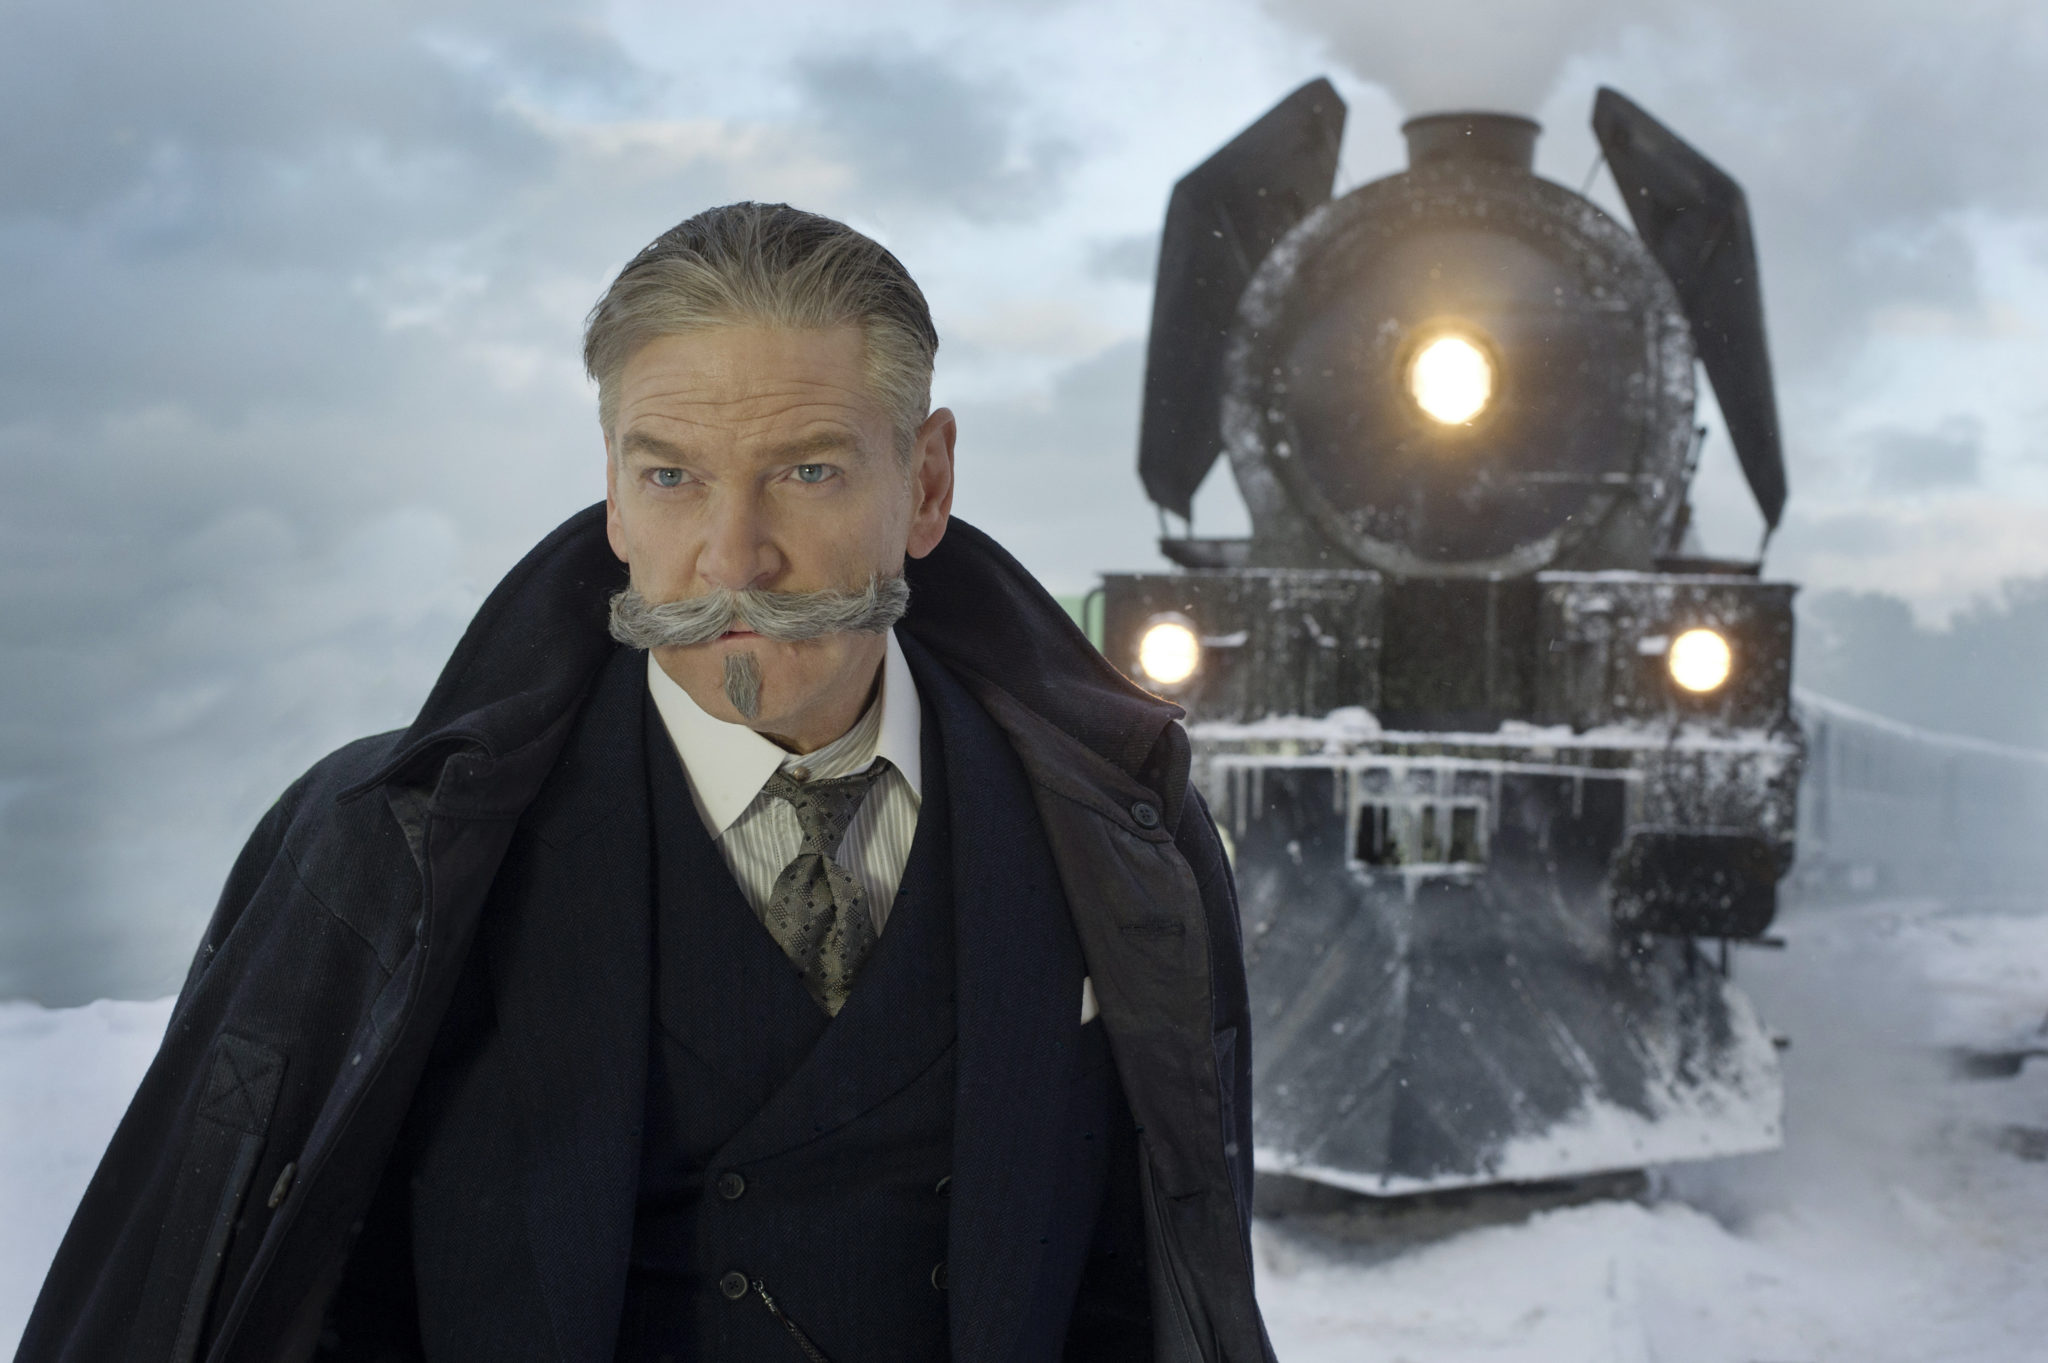 'Murder on the Orient Express' fails to revive Poirot